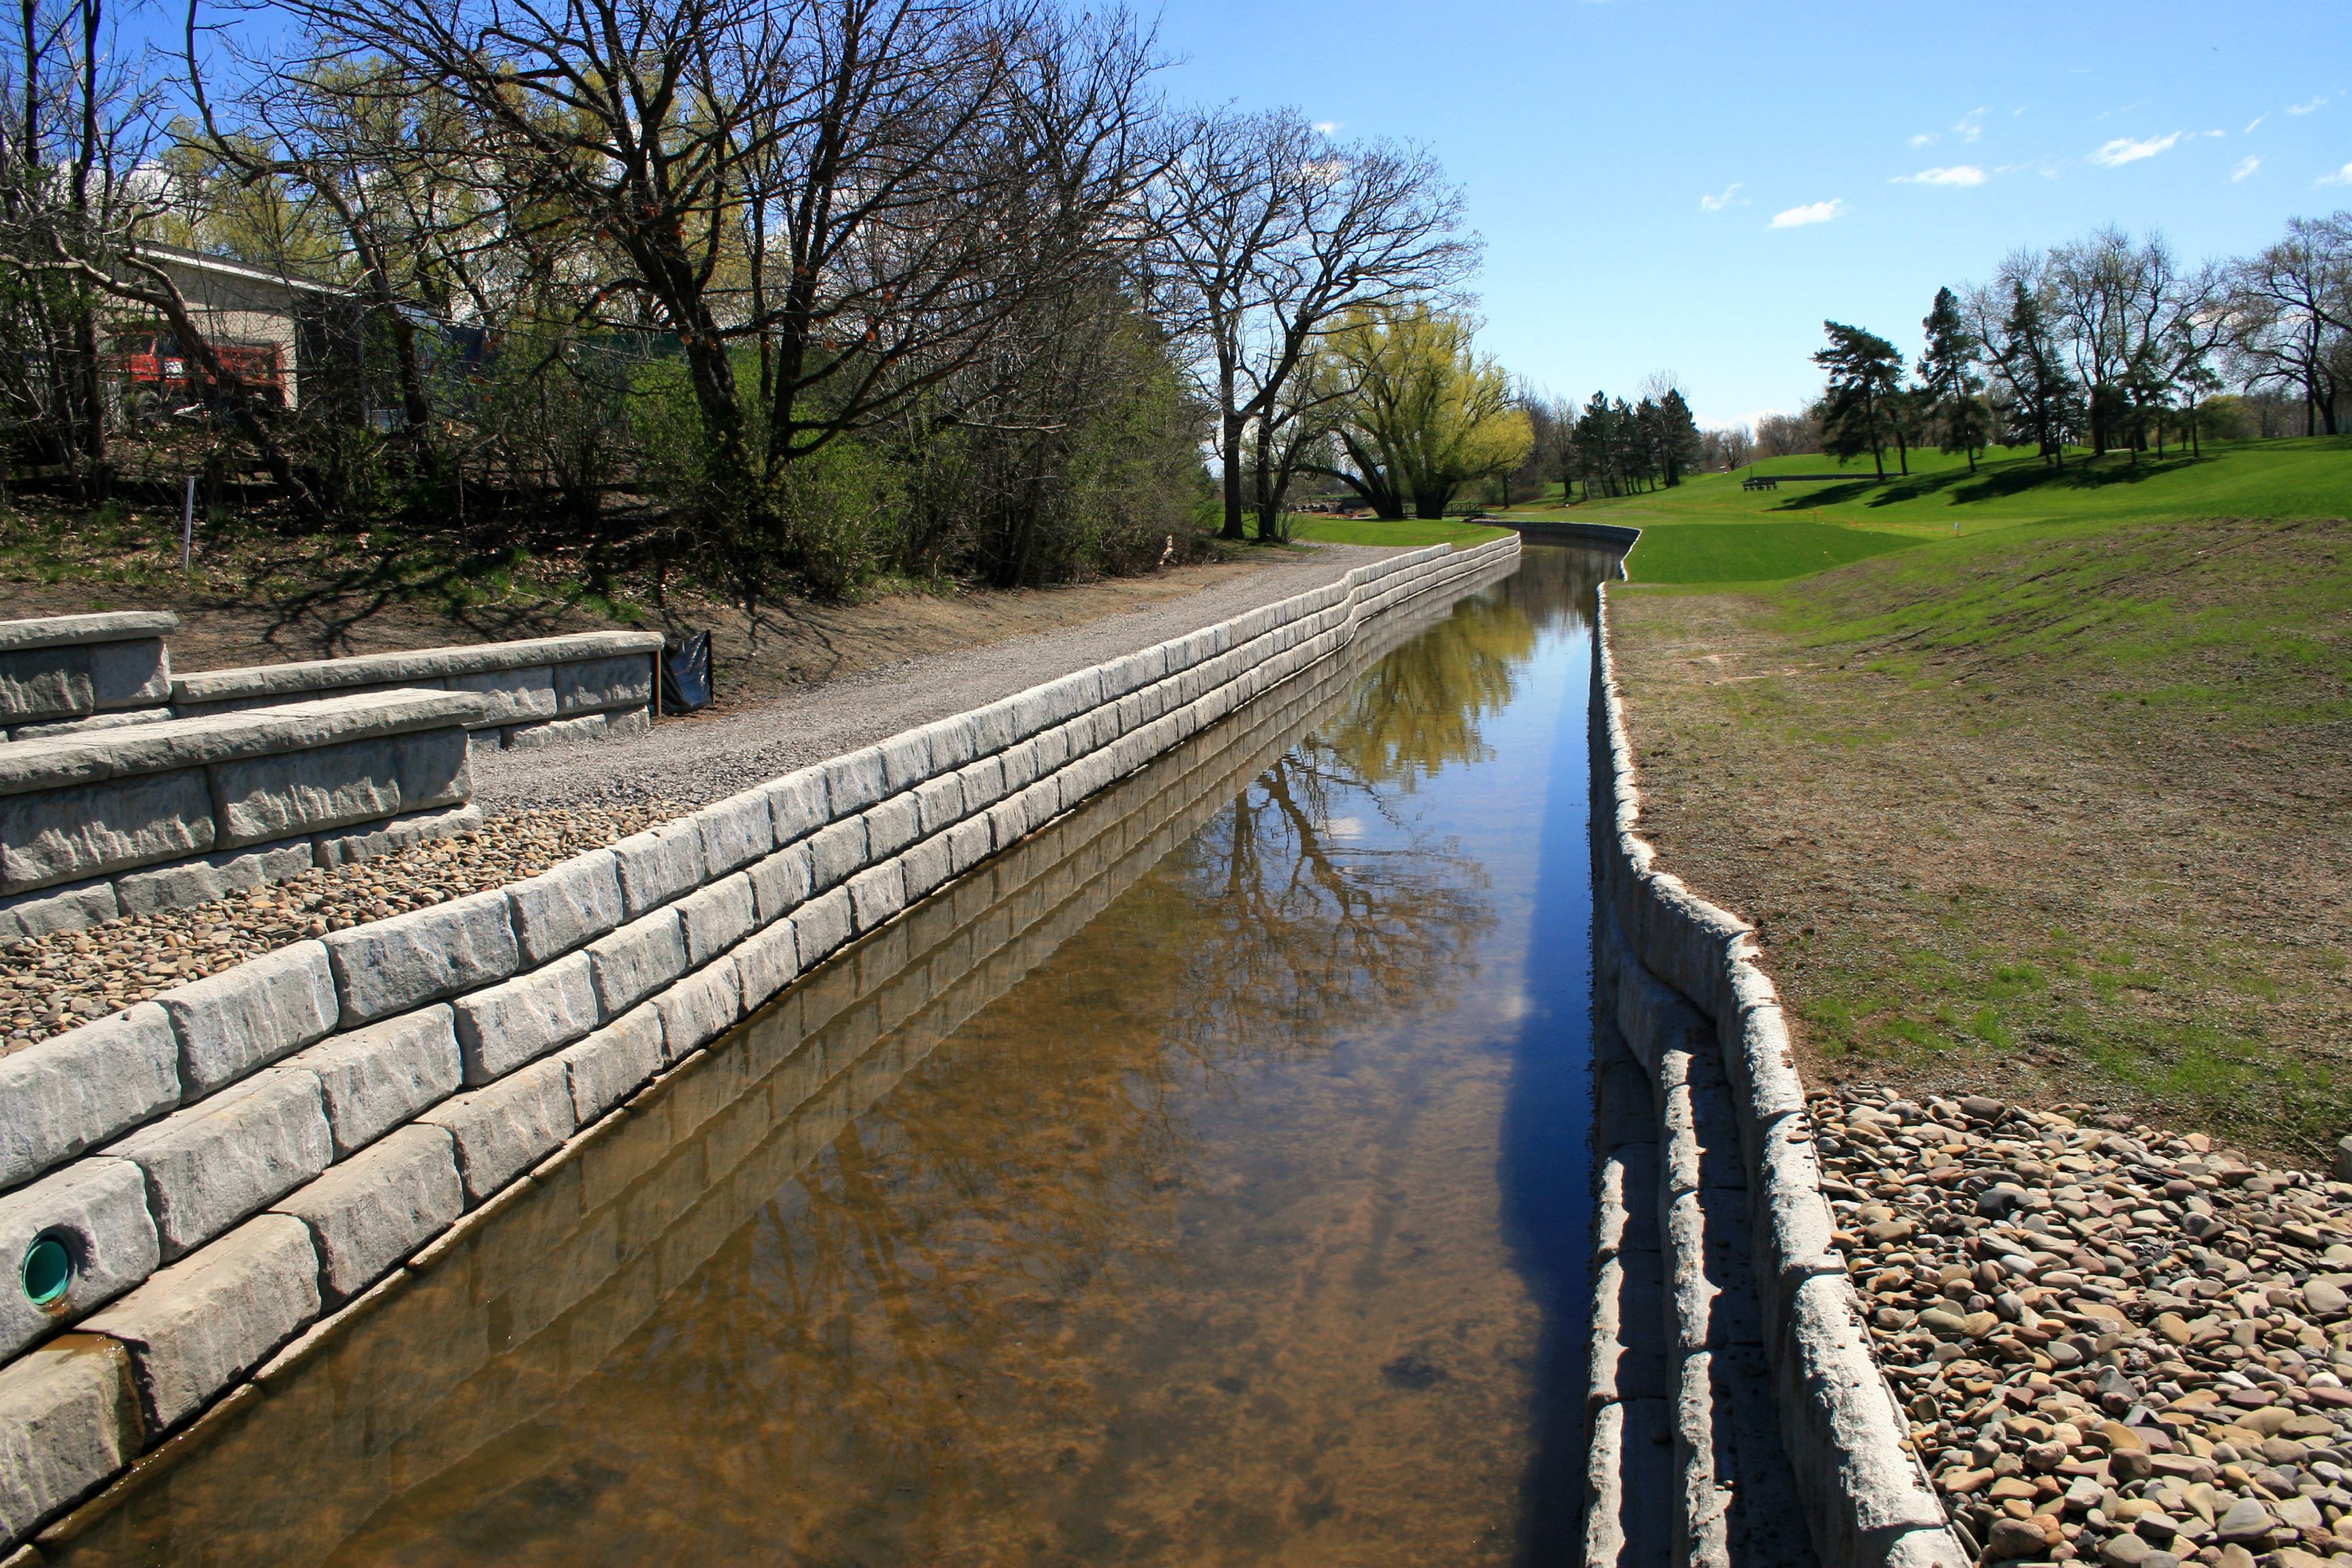 Renovated golf course storm channel supported by Limestone retaining walls